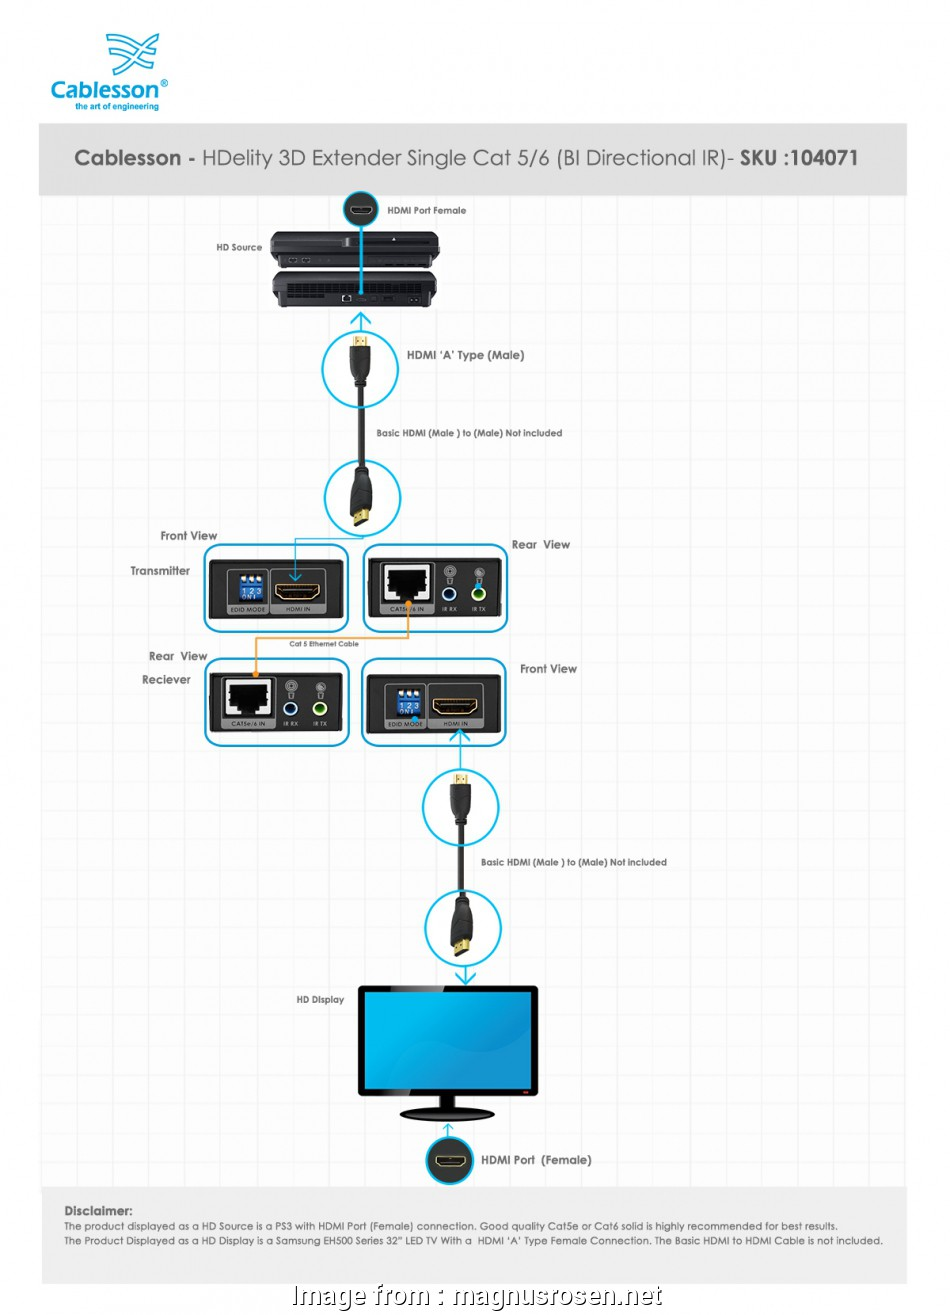 hight resolution of cat 5 wiring diagram video cablesson hdelity hdmi 3d extender single cat5 6 bi directional ir